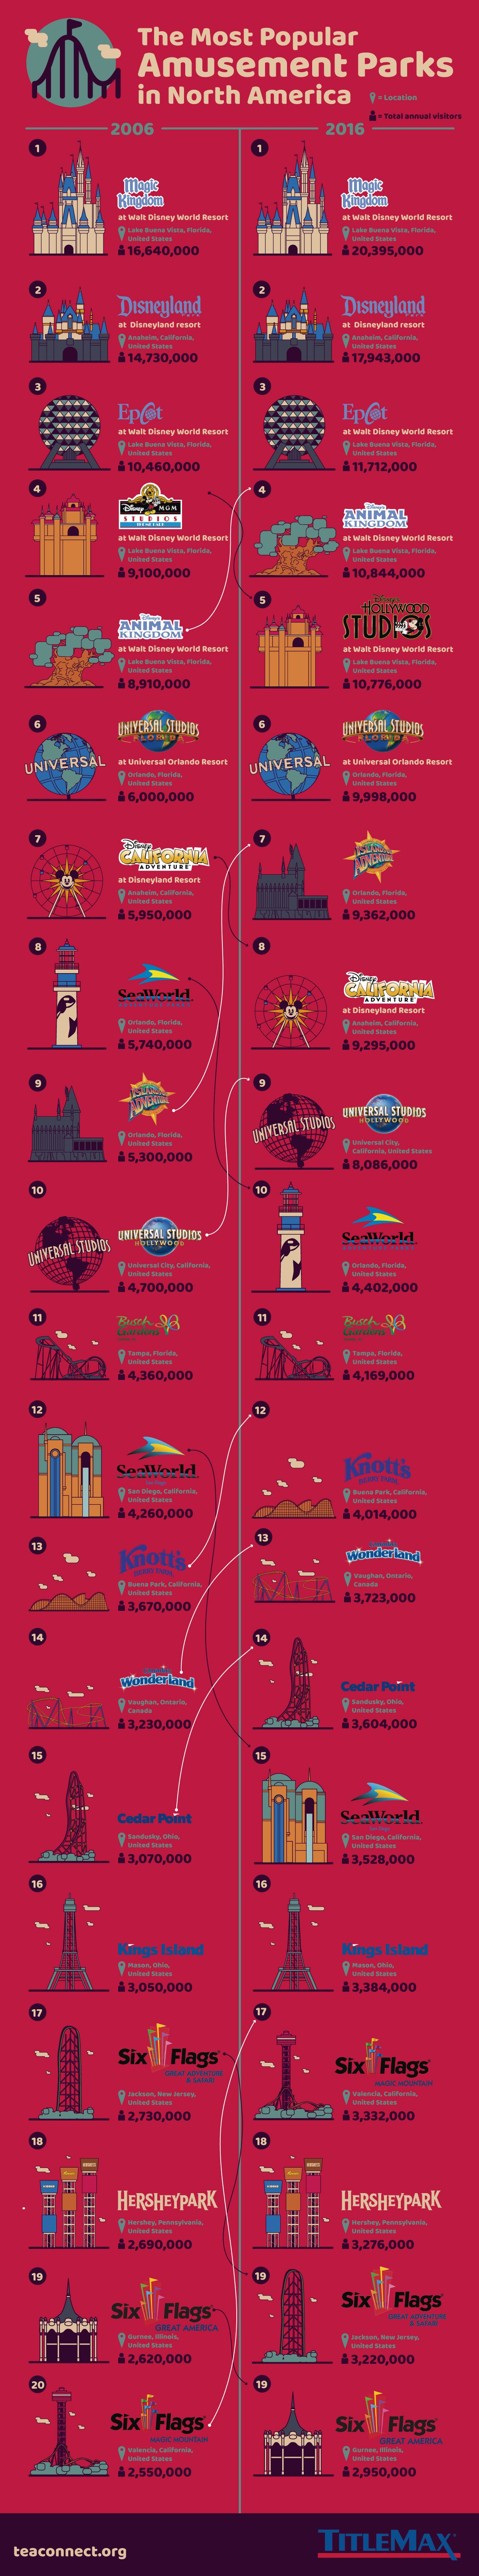 Most Popular Amusement Parks in America